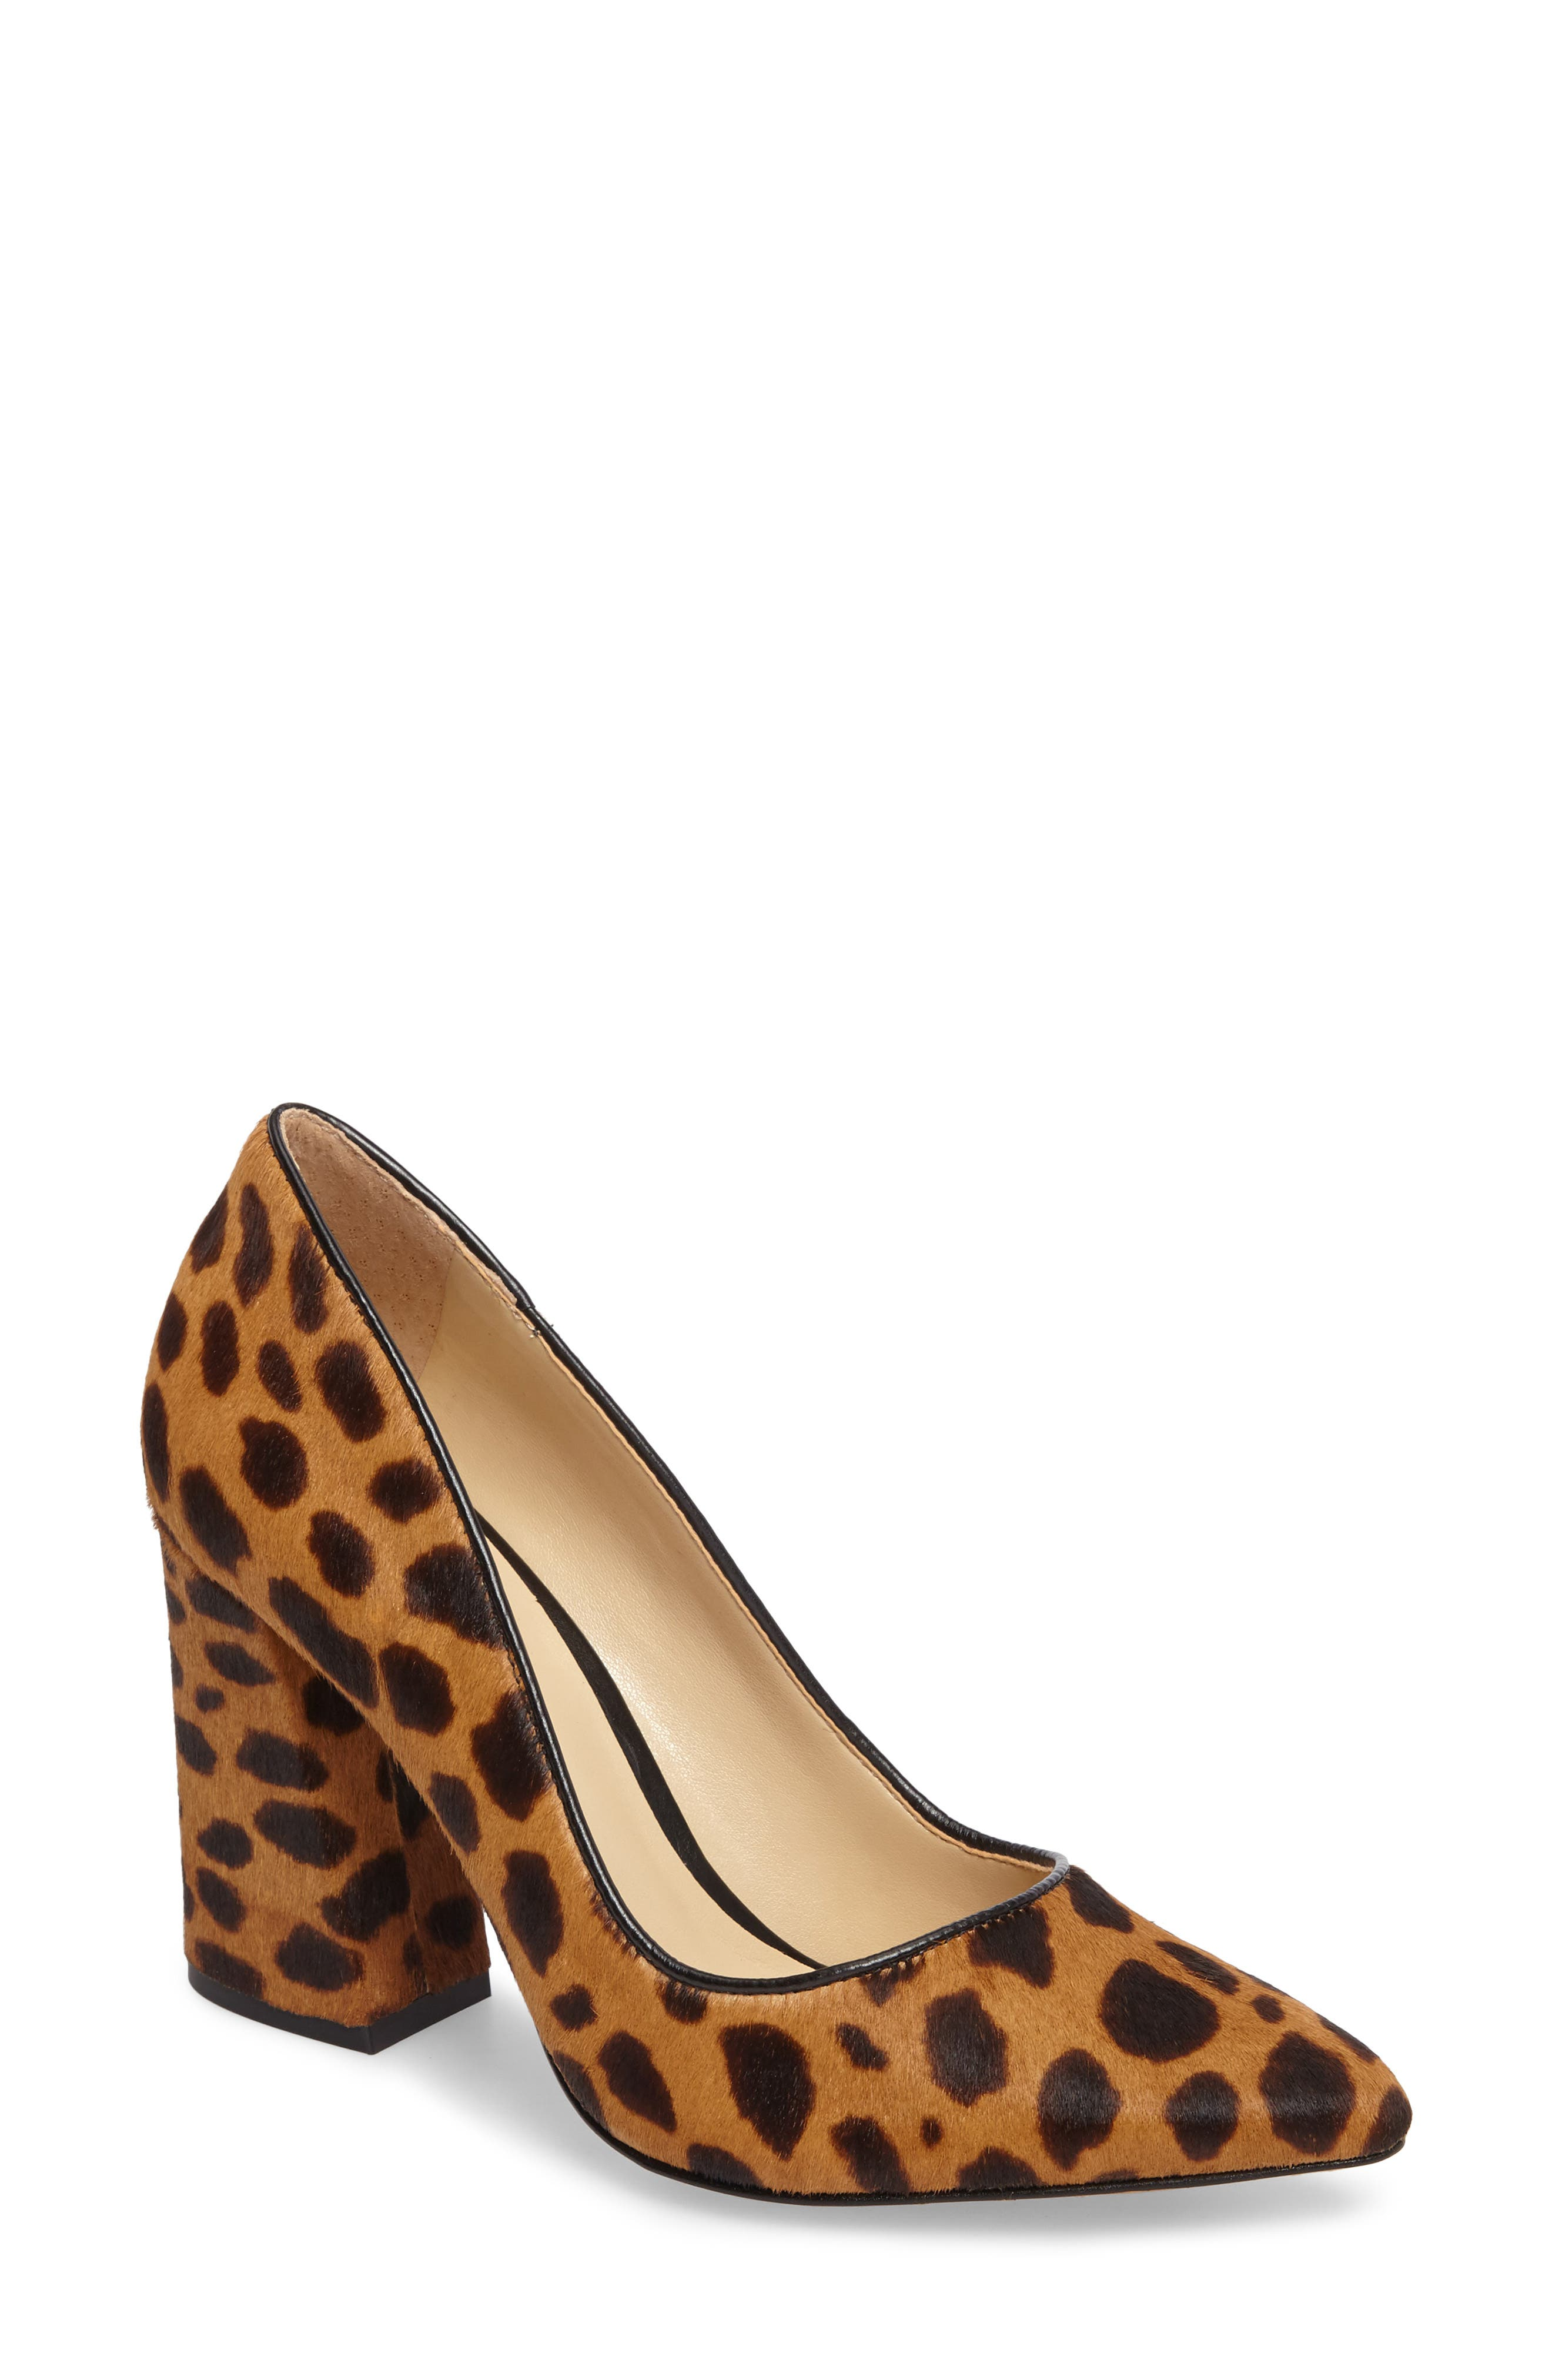 Main Image - Vince Camuto Talise Genuine Calf Hair Pointy Toe Pump (Women)